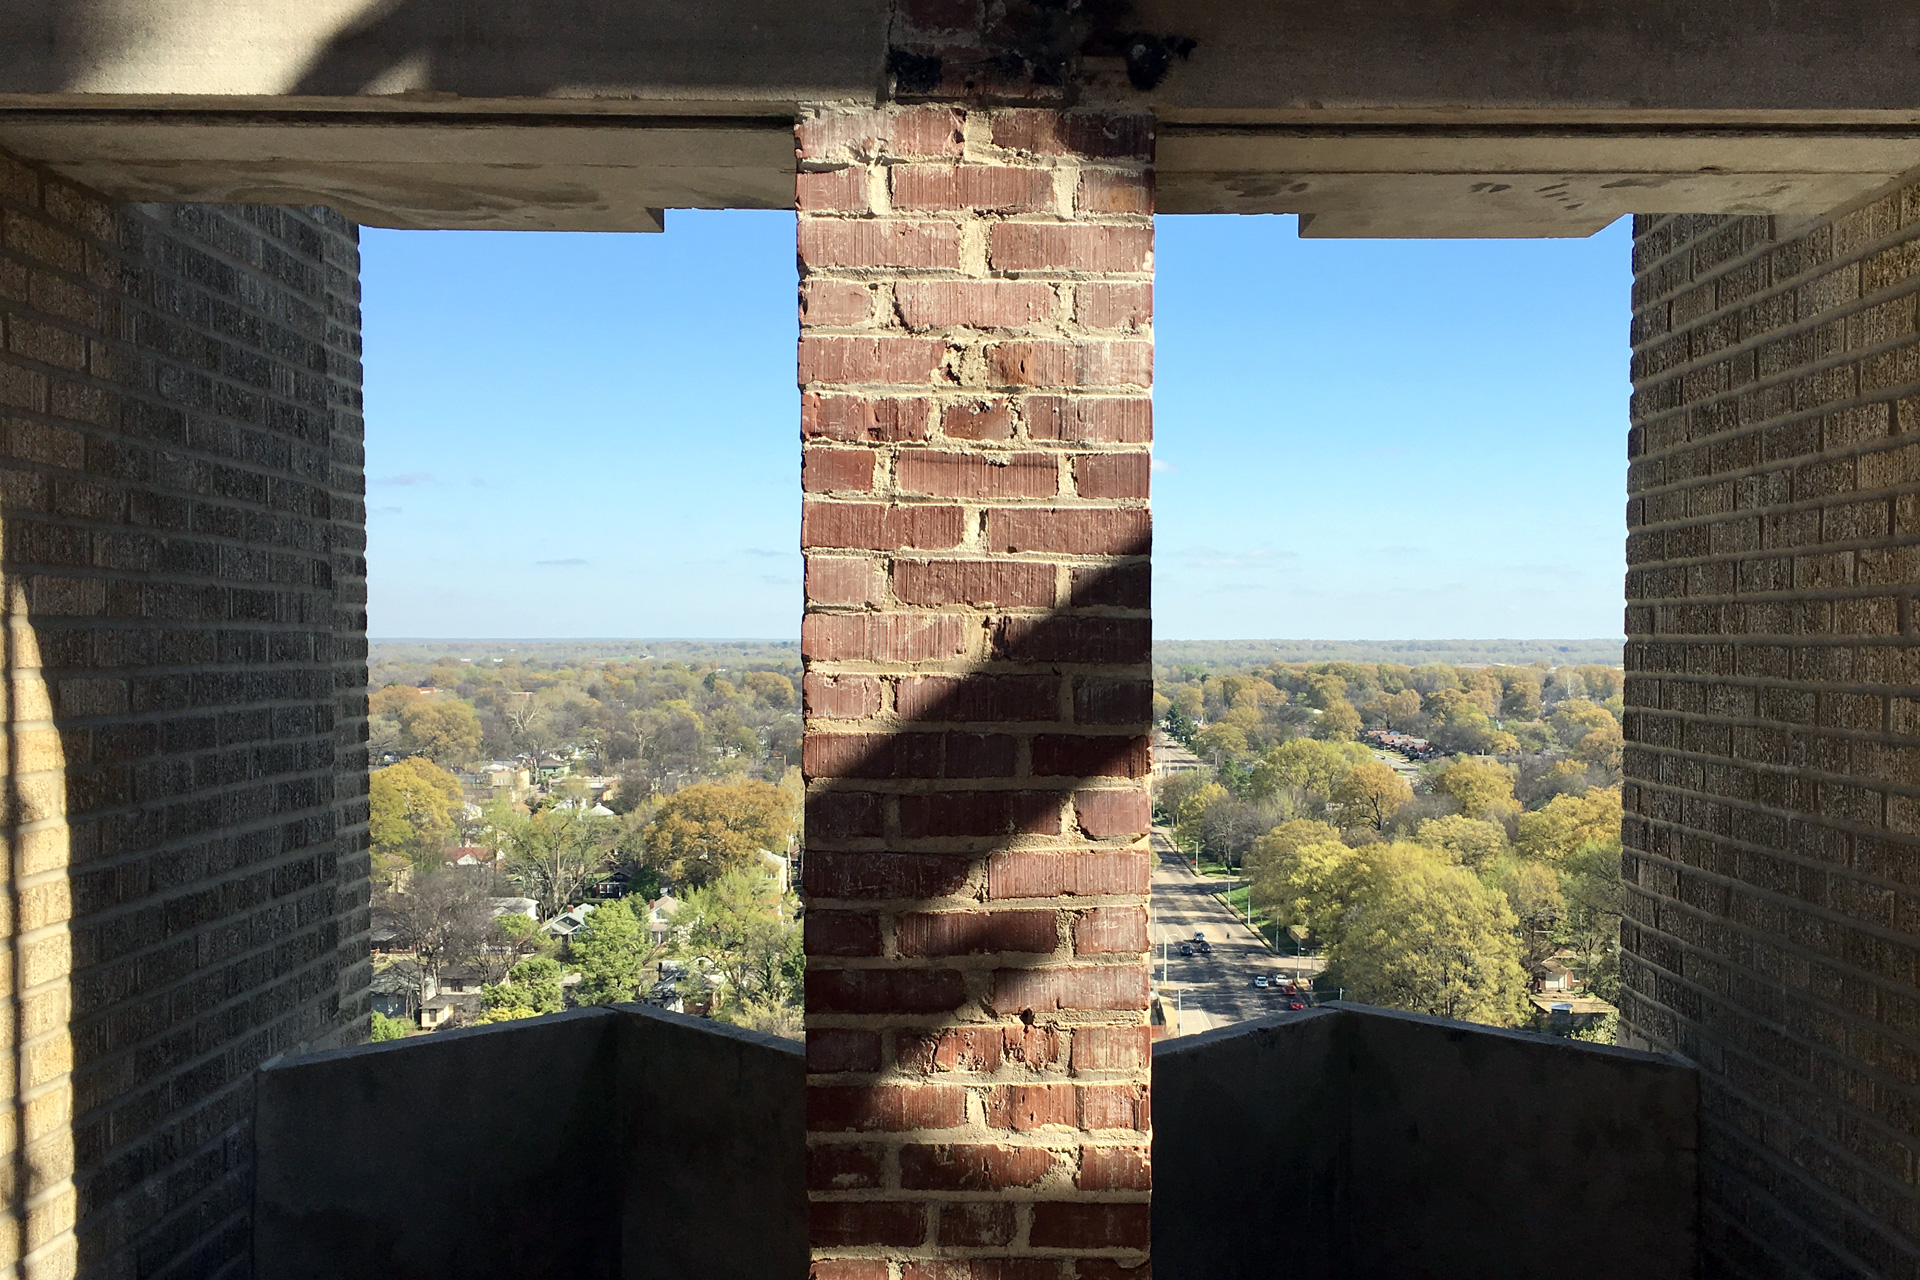 Looking out from the tower.